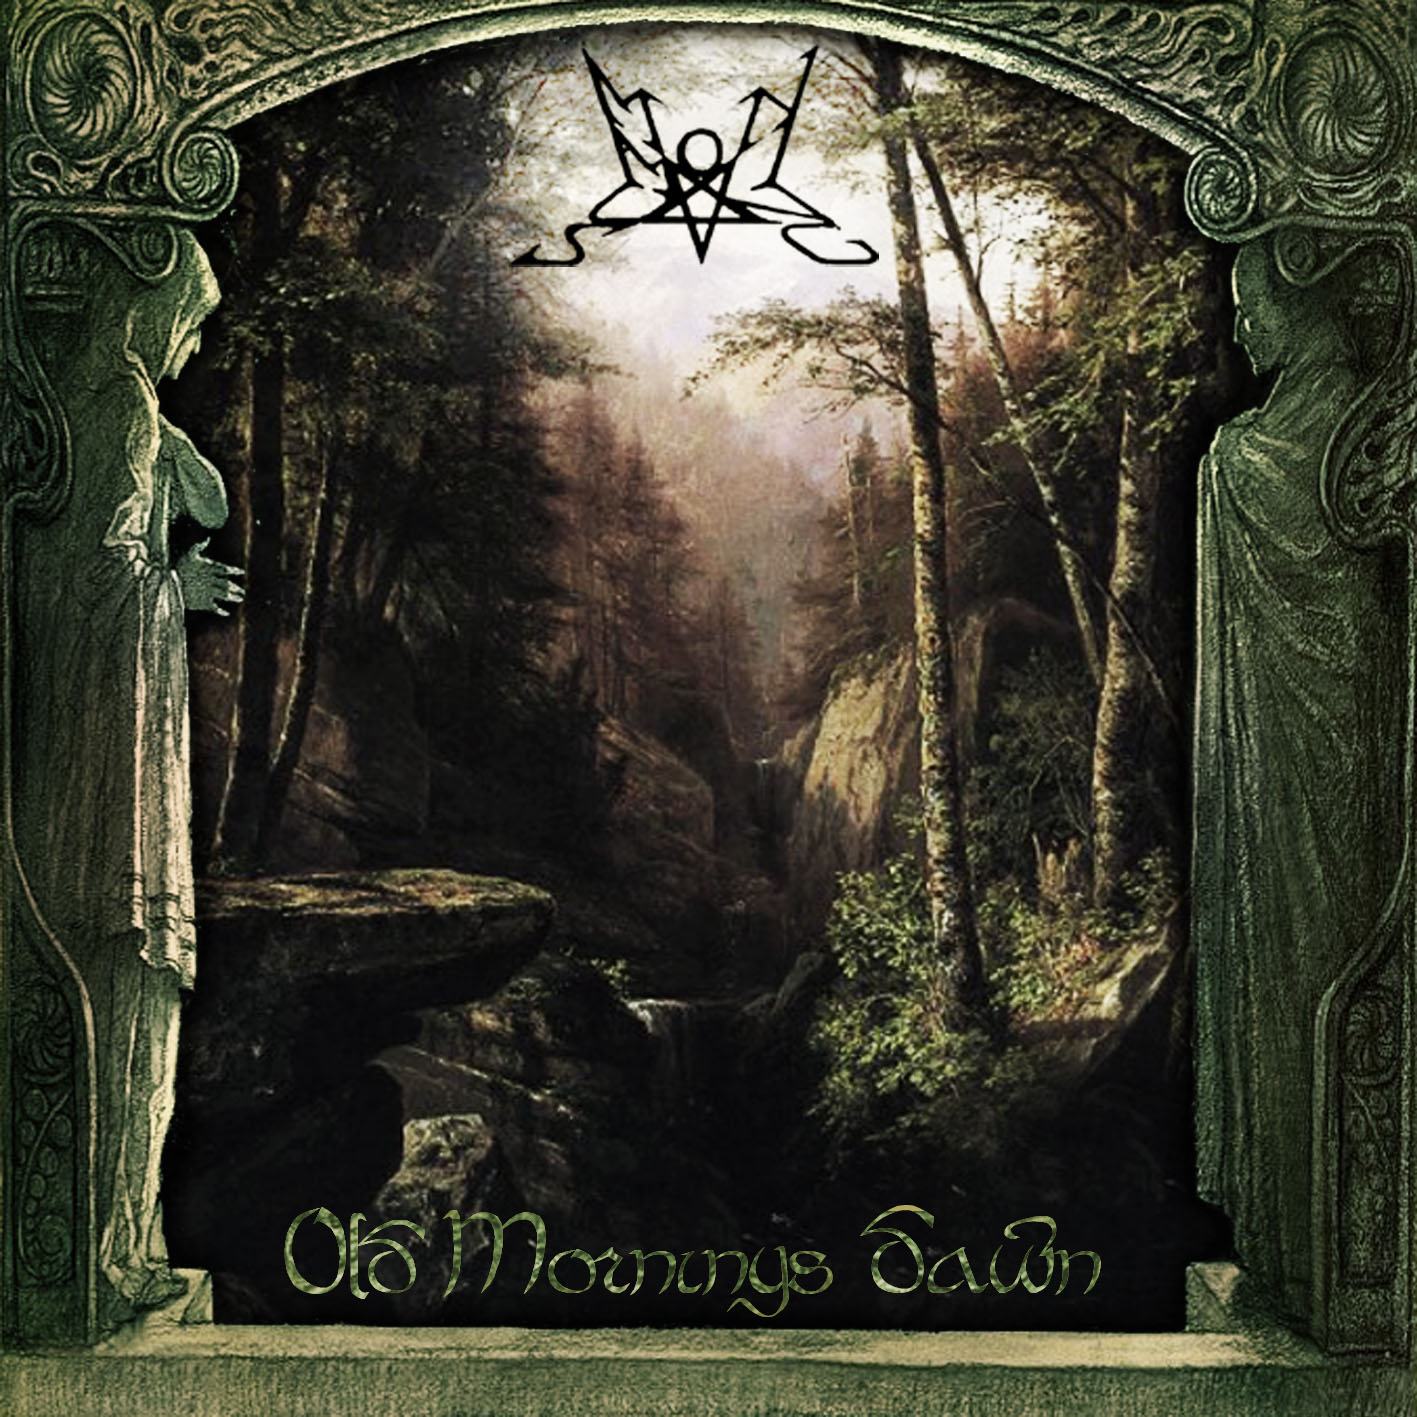 News Added Jan 22, 2013 Atmospheric black metal veterans Summoning have posted an update on their website confirming that they are about to finish their upcoming album Old Mornings Dawn. Furthermore, they stated that there will be an English speaking guest on the album doing narration on two songs. The release date is now planned […]